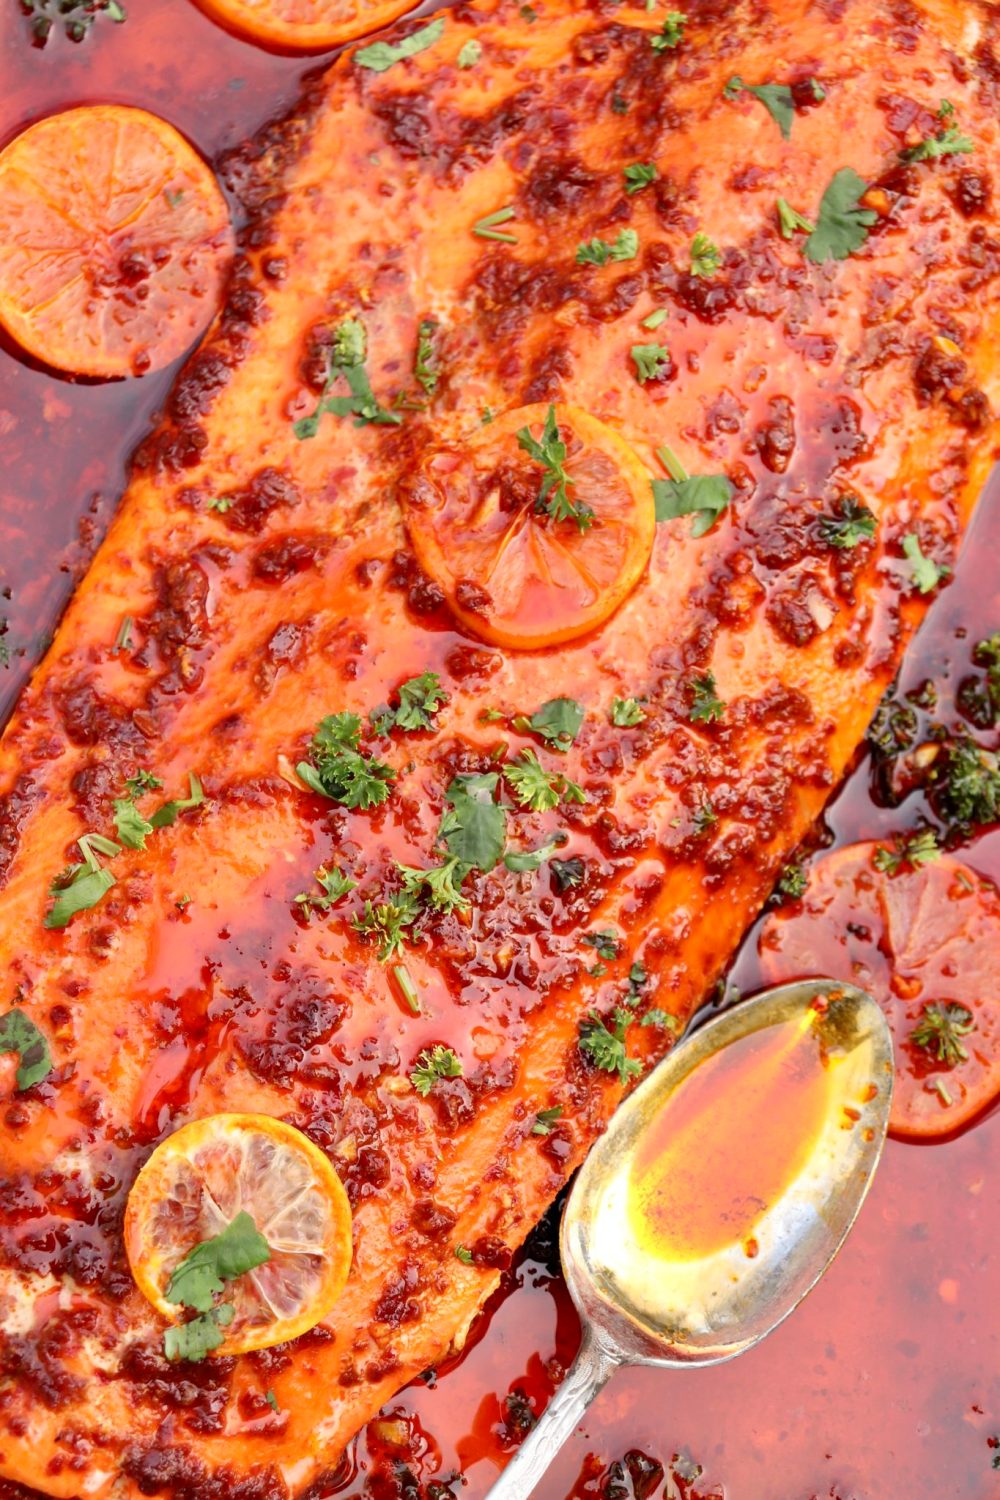 One easy-to-find condiment is the key to this super simple, heart-healthy meal that's sure to wow family and friends. The low oven temp virtually guarantees tender, perfectly cooked fish every time and won't overheat your kitchen either!